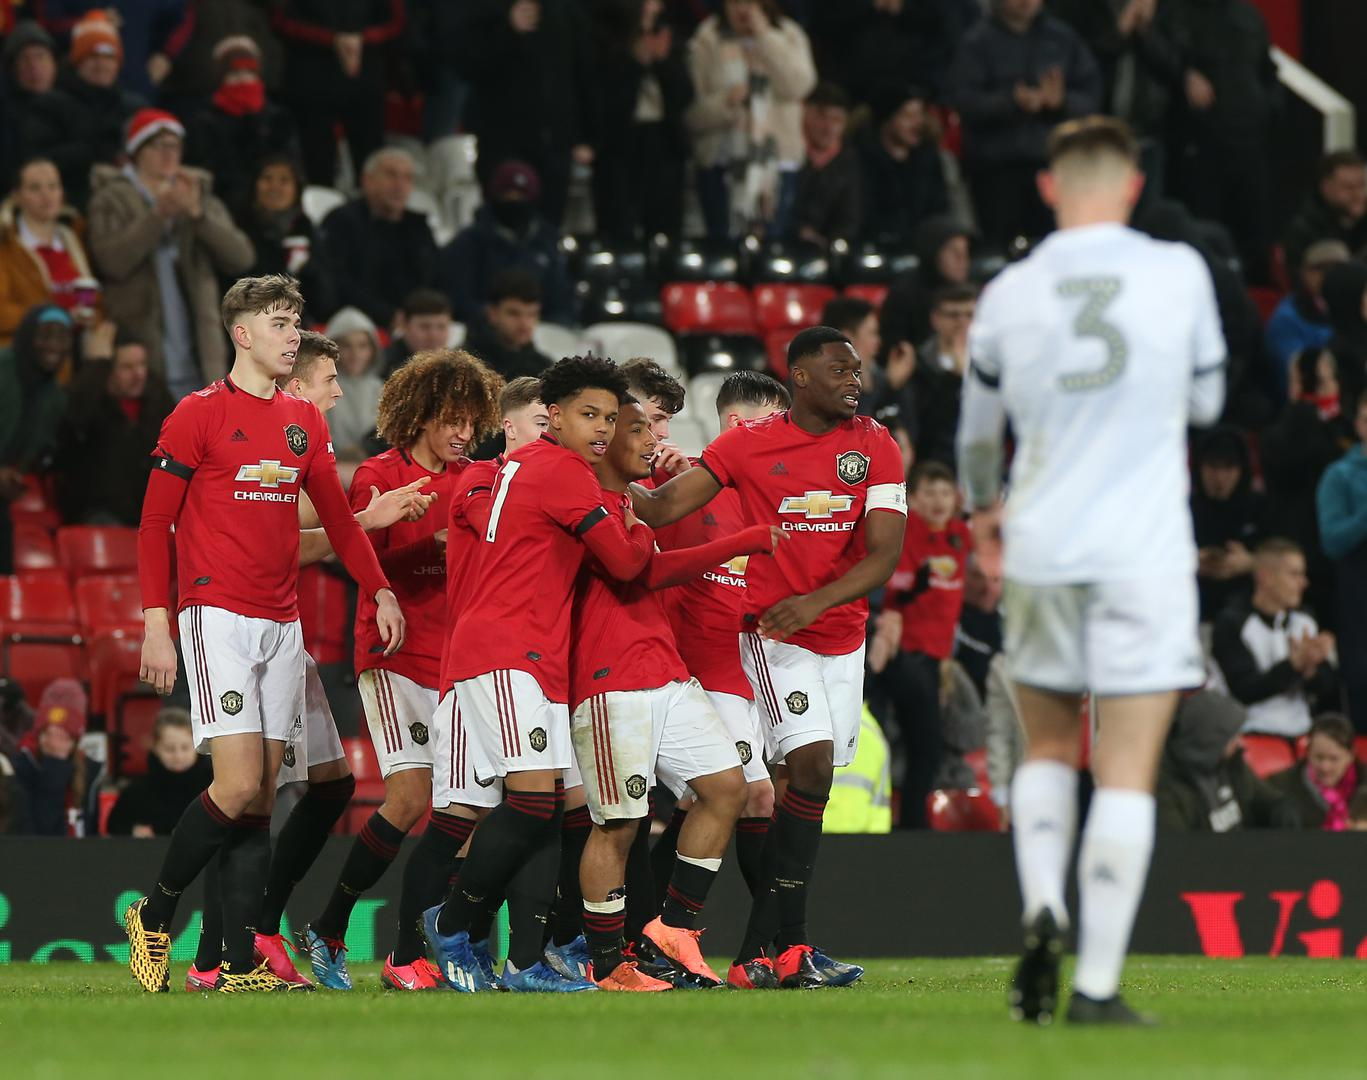 United celebrate against Leeds.